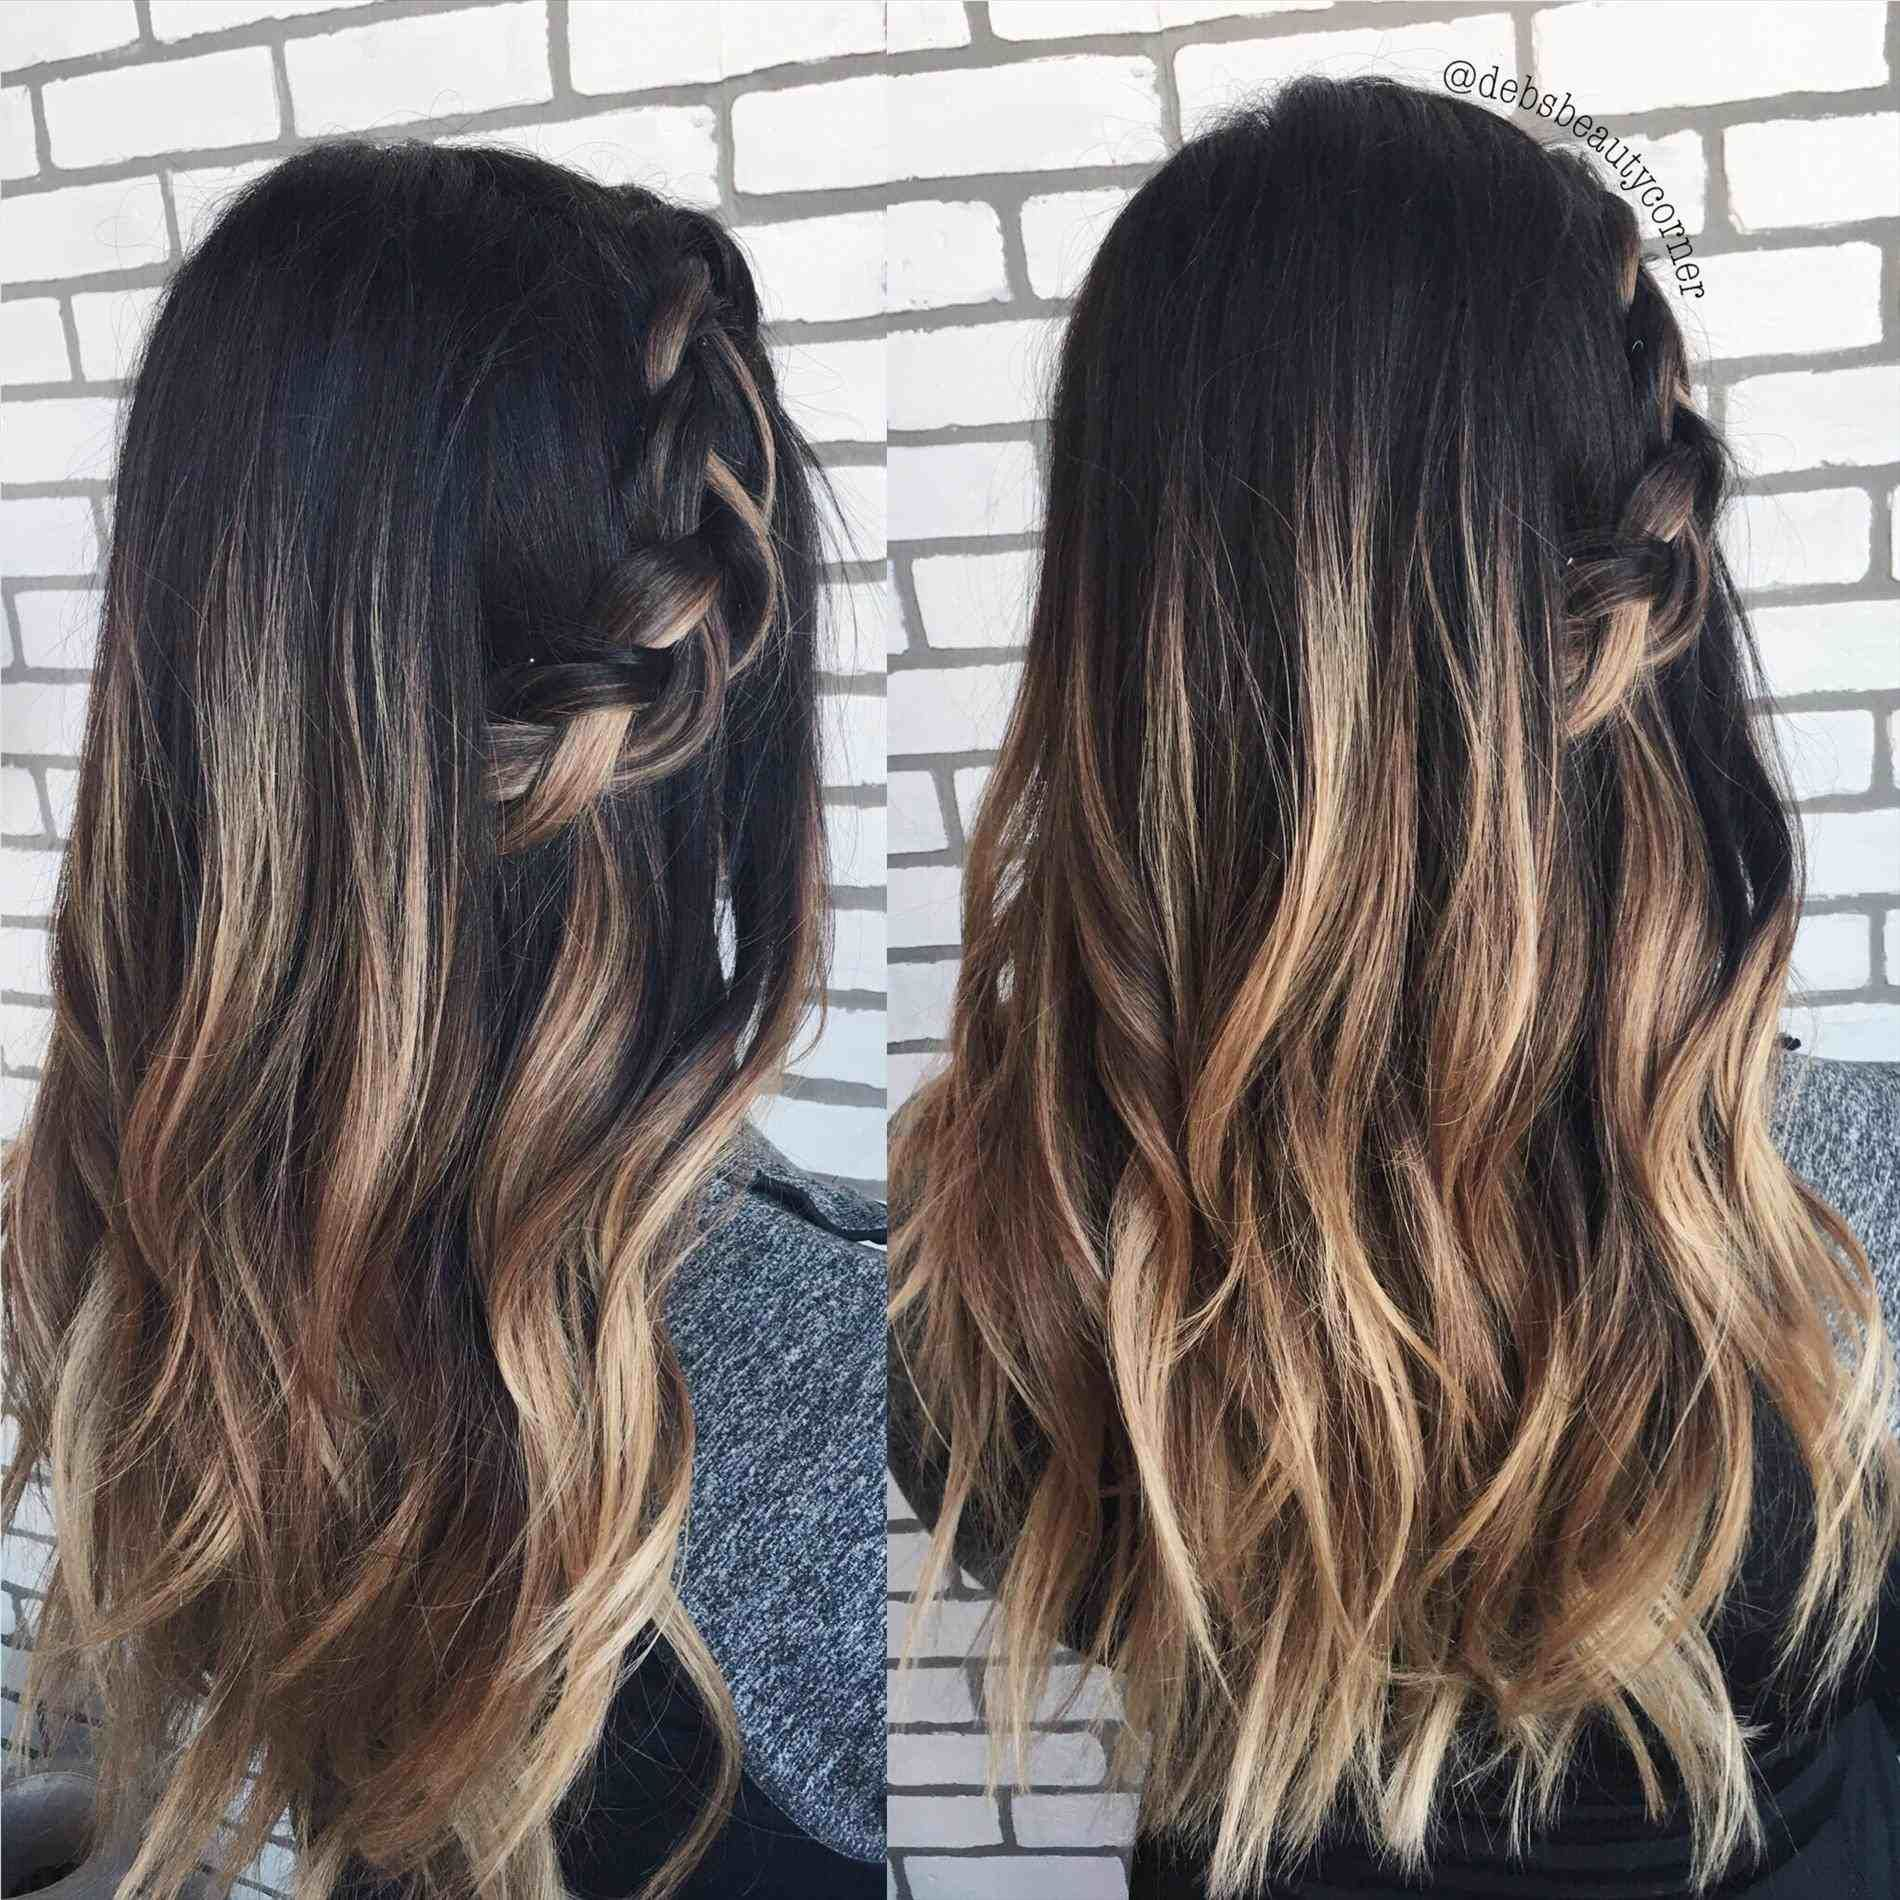 Balayagehair Club Nbspthis Website Is For Sale Nbspbalayagehair Resources And Information Balayage Hair Dark Balayage Dark Brown Hair Balayage